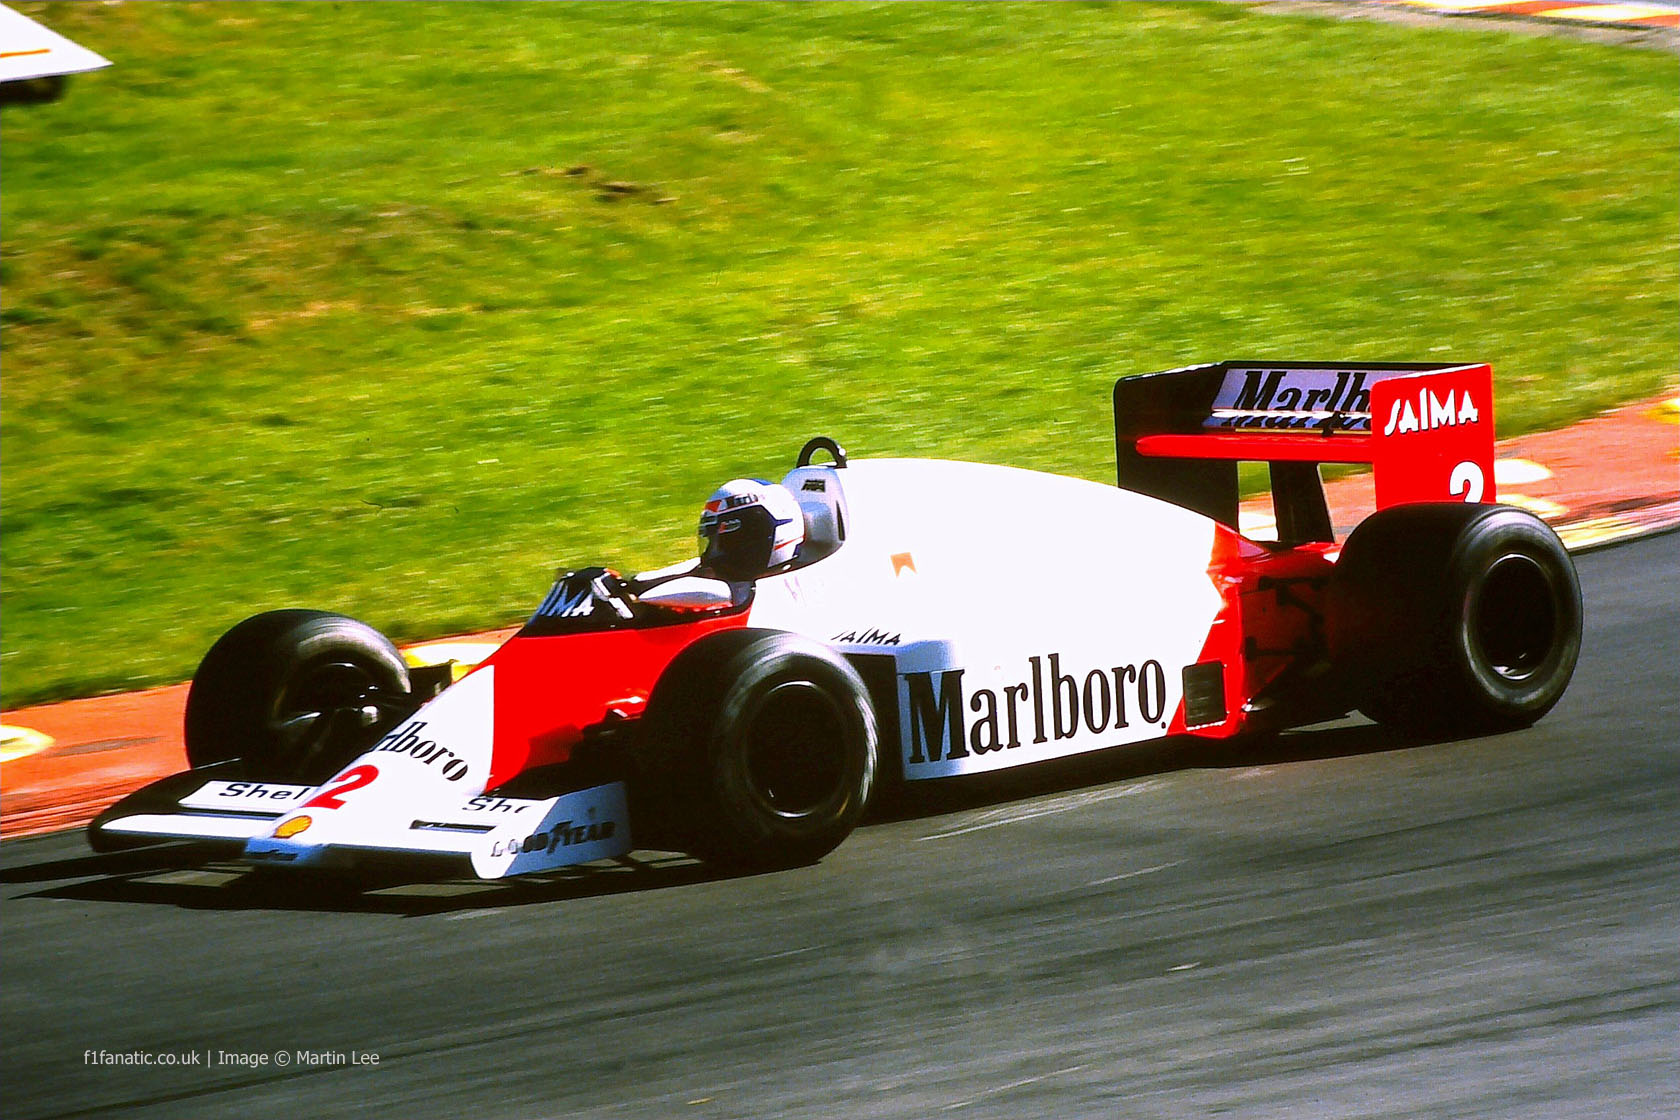 Alain Prost, McLaren, Brands Hatch, 1985